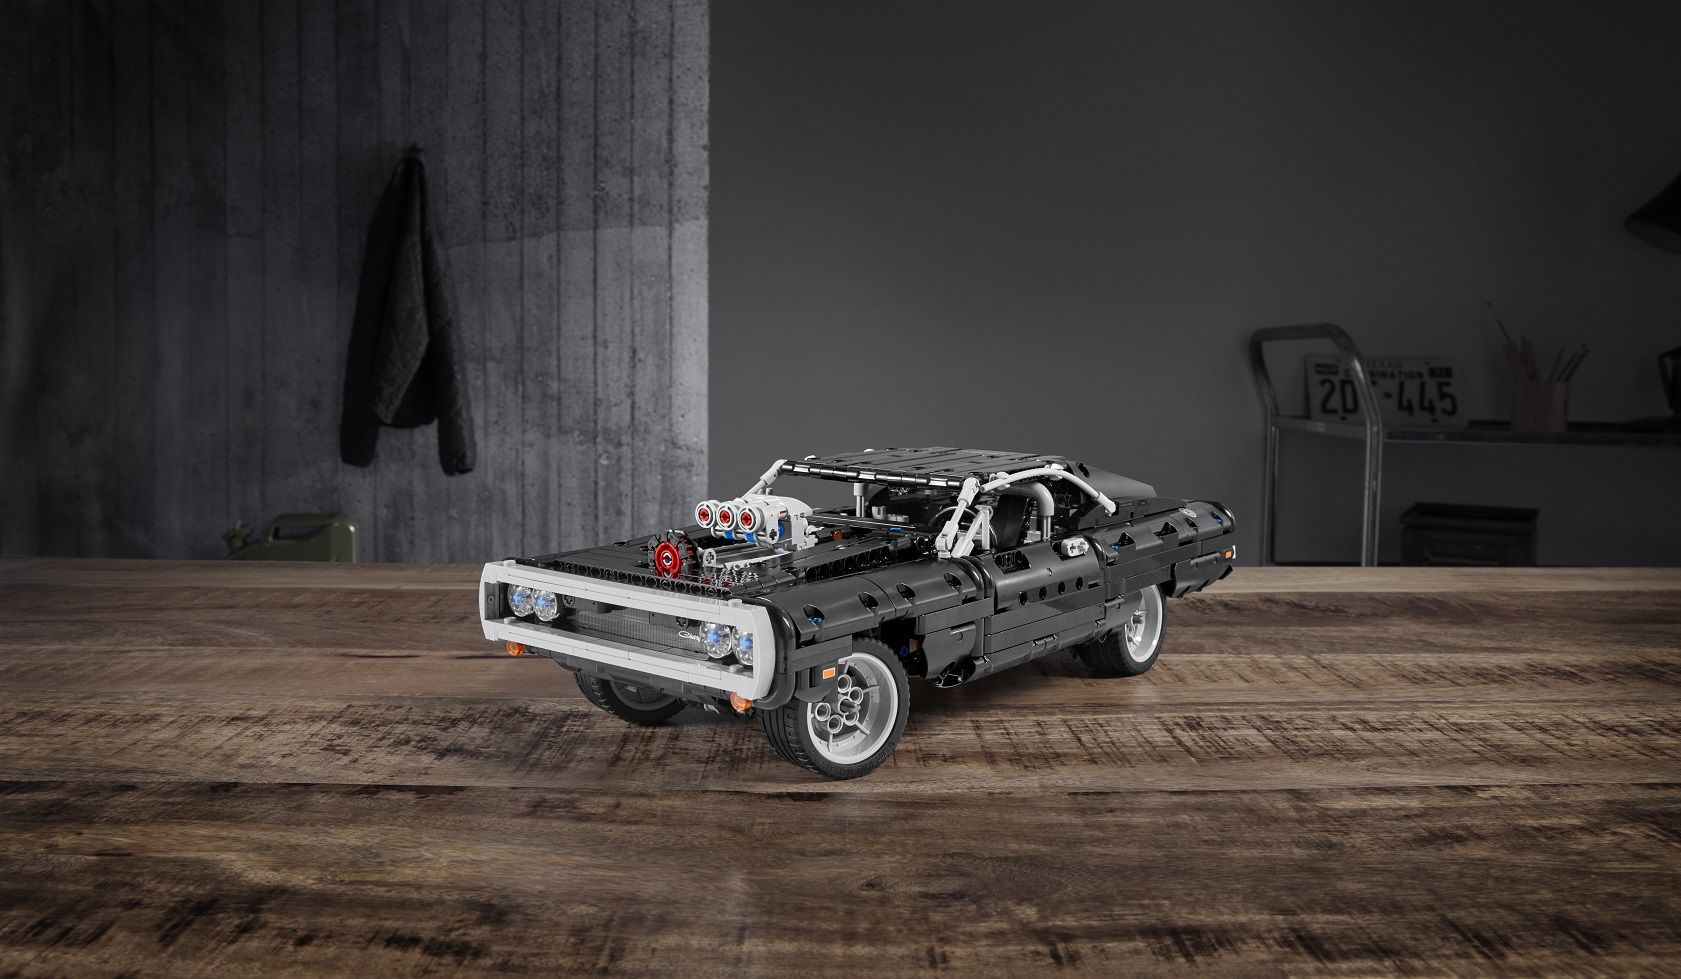 Lego gets Fast and Furious with Dom Torreto's Dodge Charger